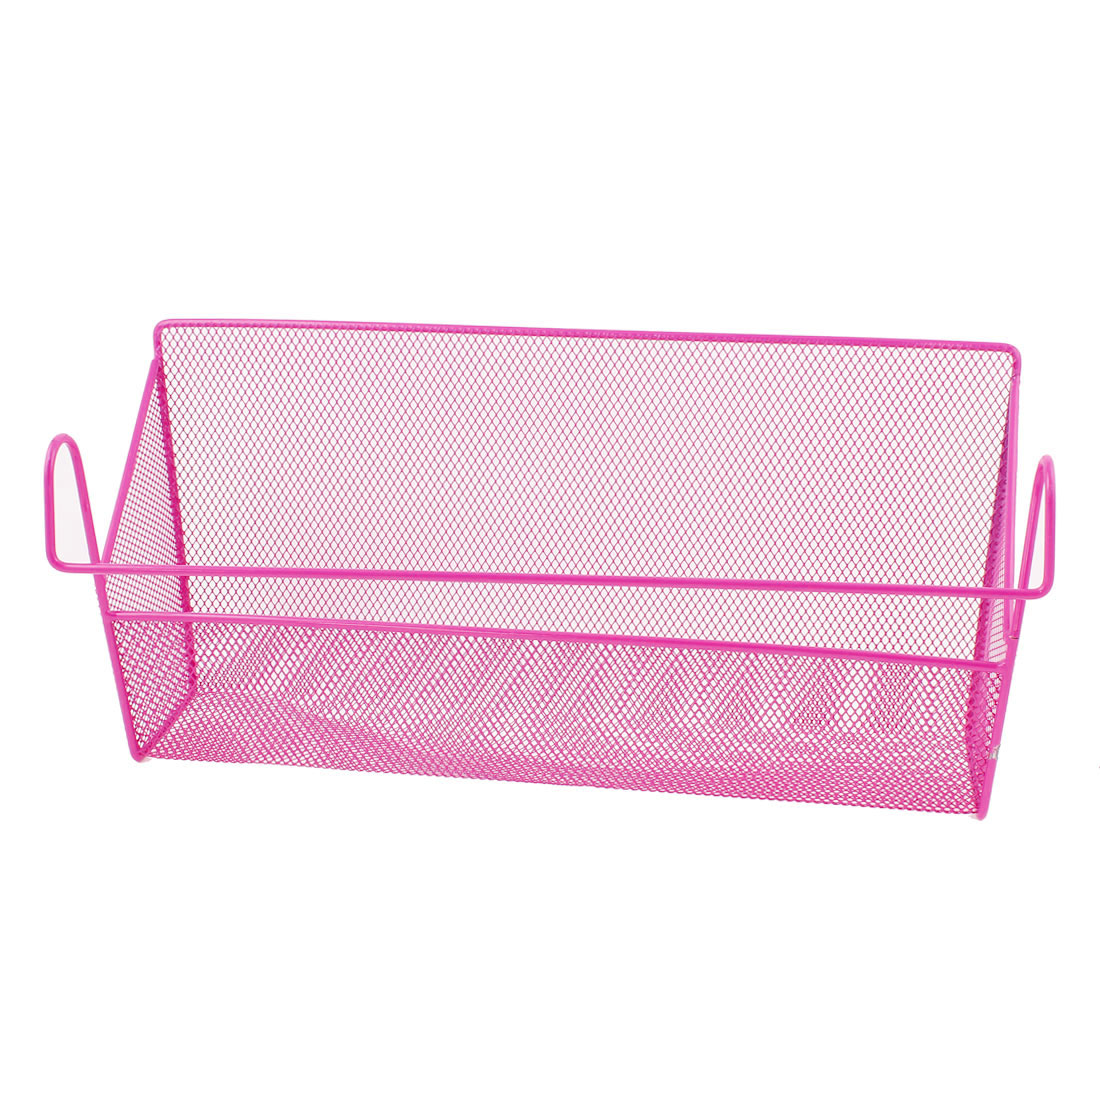 Home School Office Craft Stacking Hanging Organizer Nesting Wire Storage Bin Basket Rack Holder Fuchsia